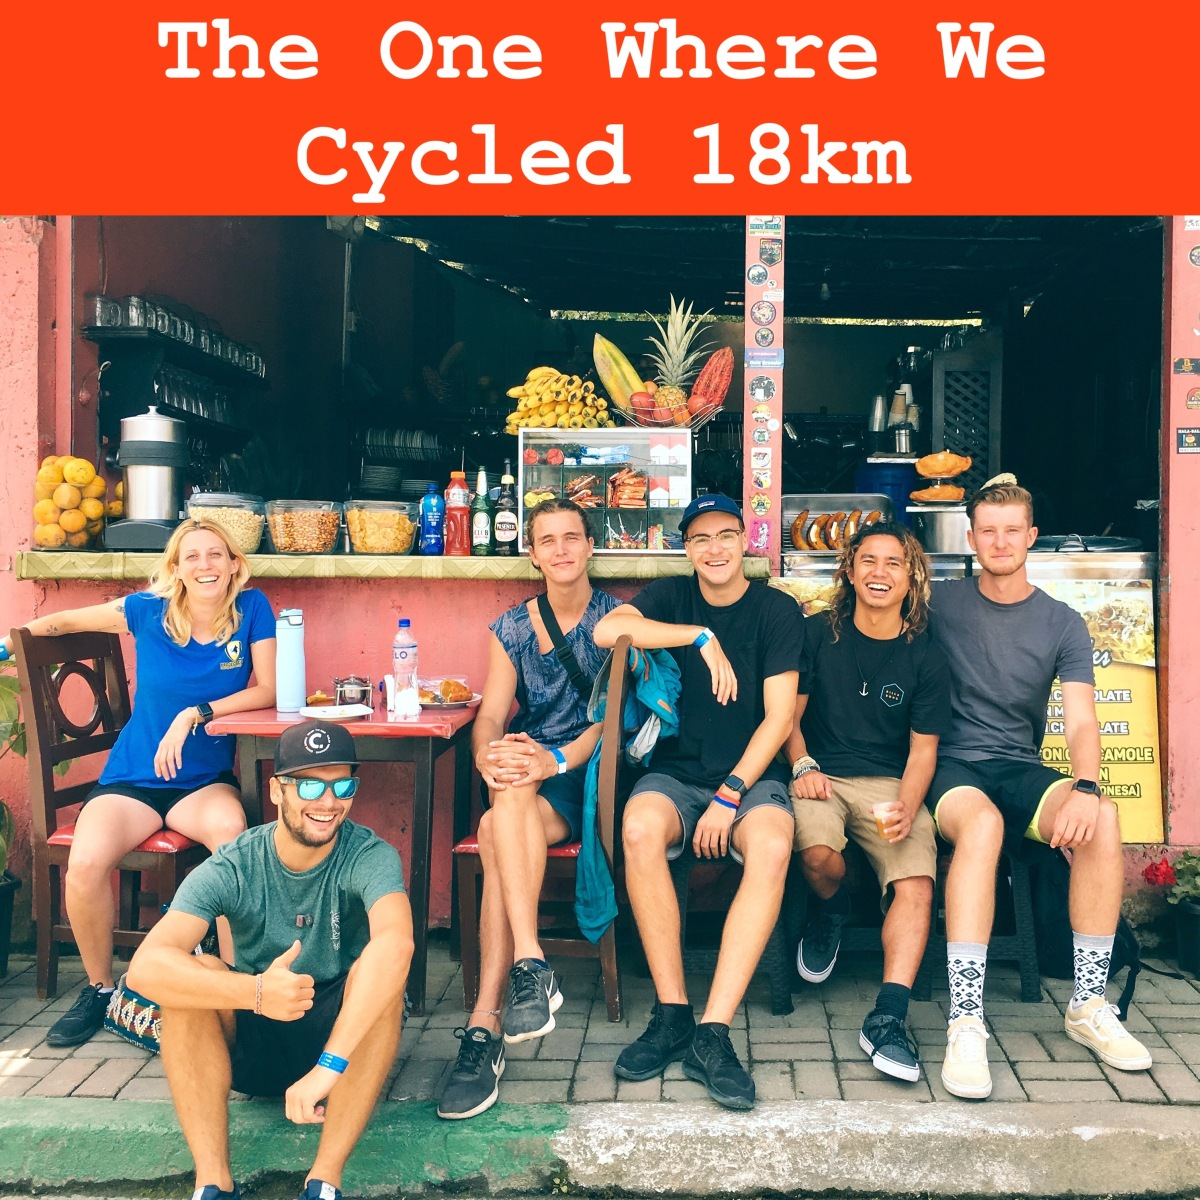 The One Where We Cycled 18km (And Some Other Stuff)